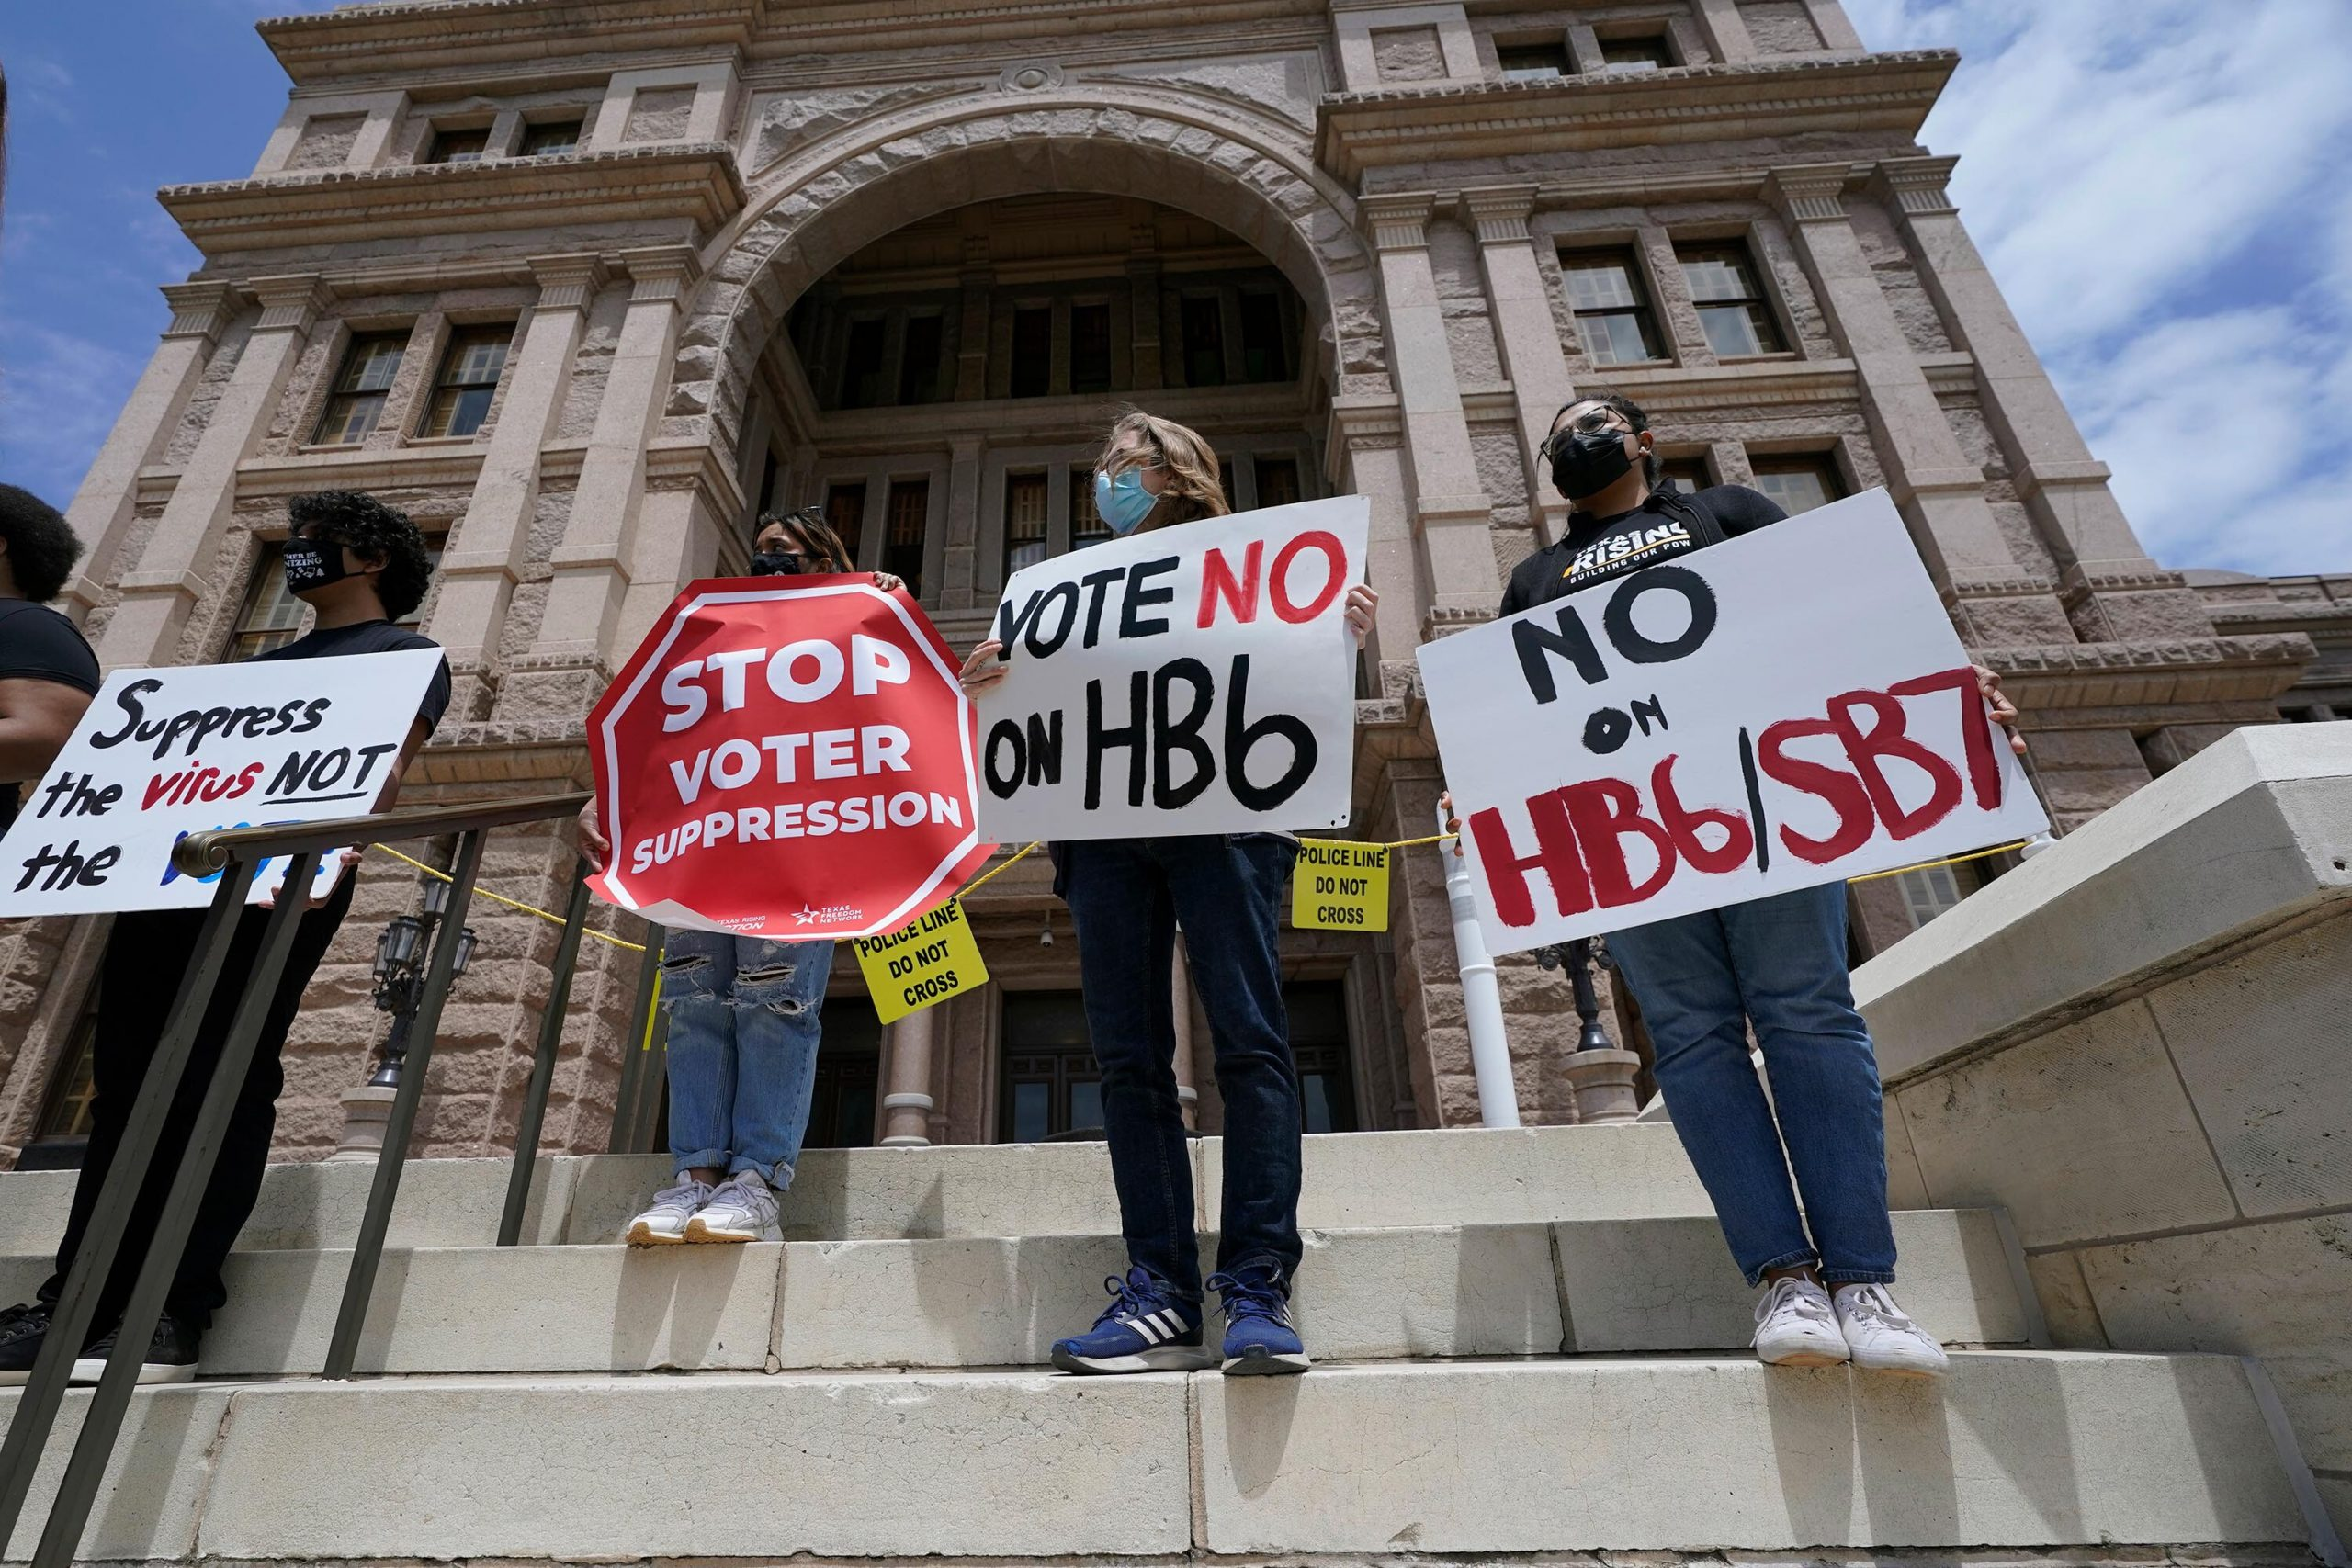 Dems in Texas Legislature plan to leave state to stop GOP passage of voting bill 6